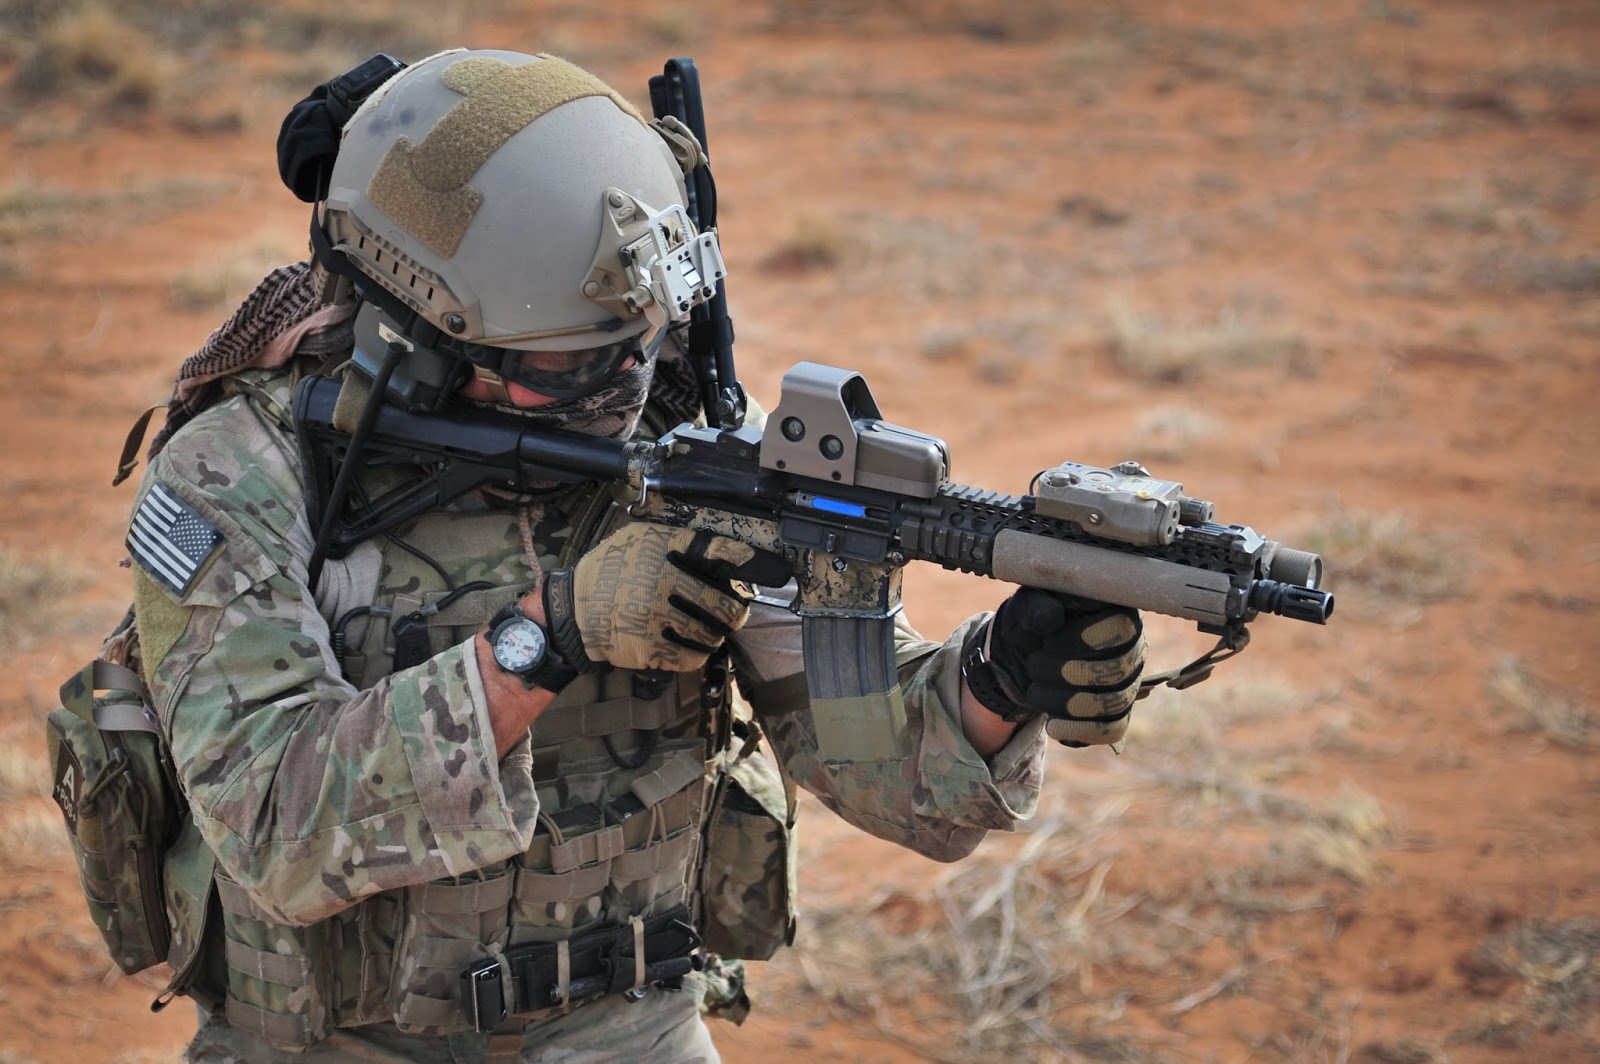 SNAFU!: Why does the USAF Special Tactics exist?